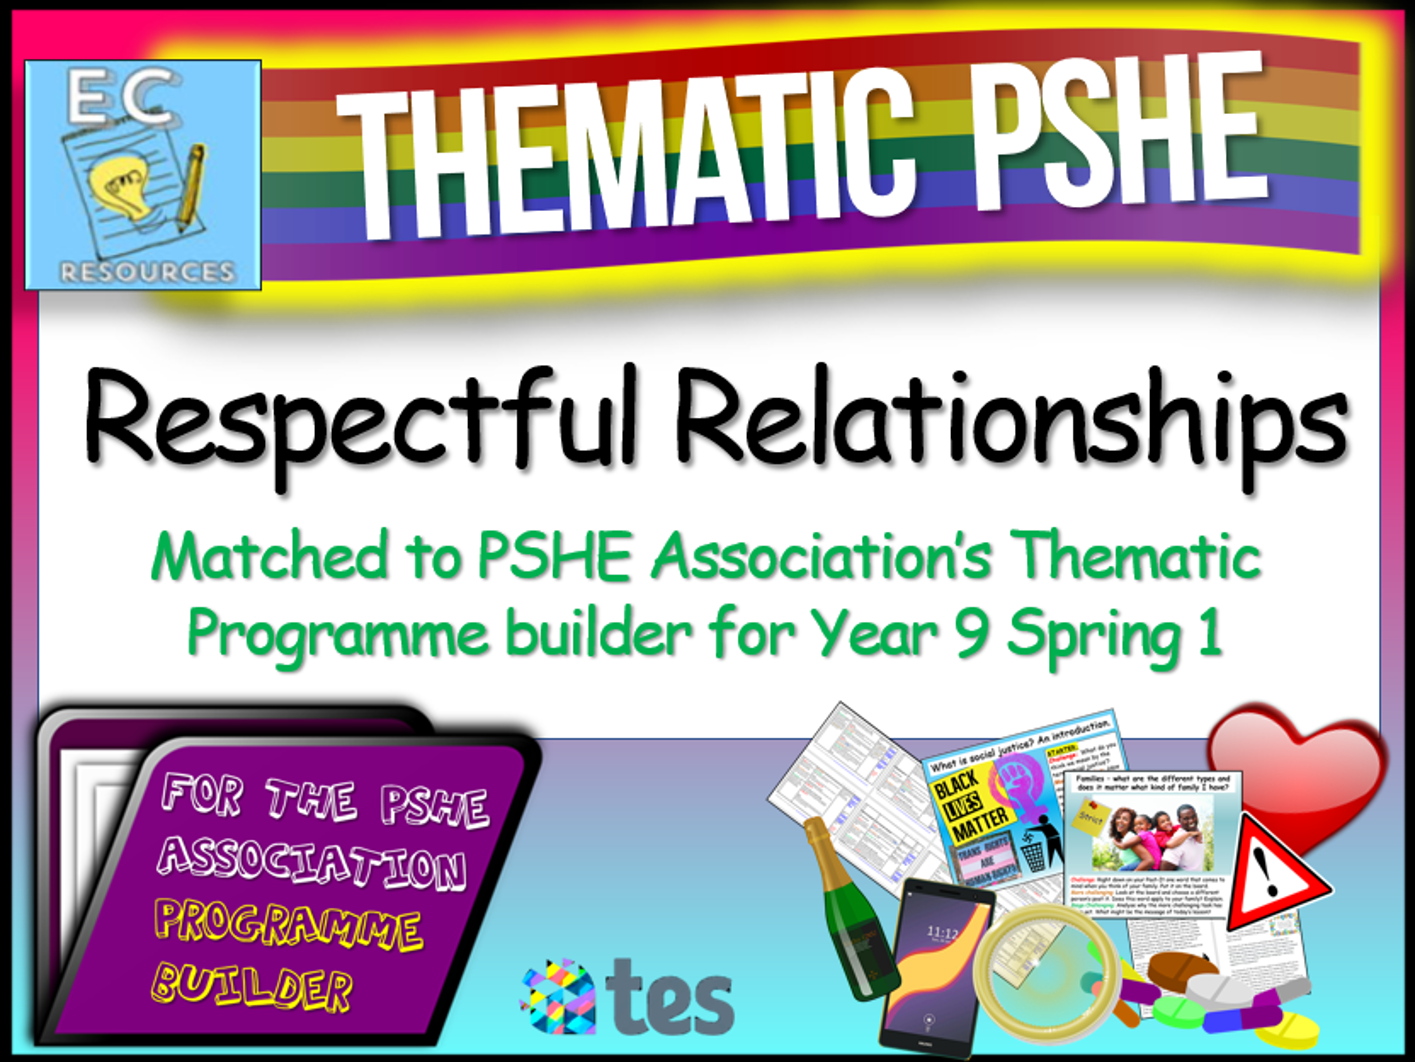 Respectful Relationships Thematic PSHE